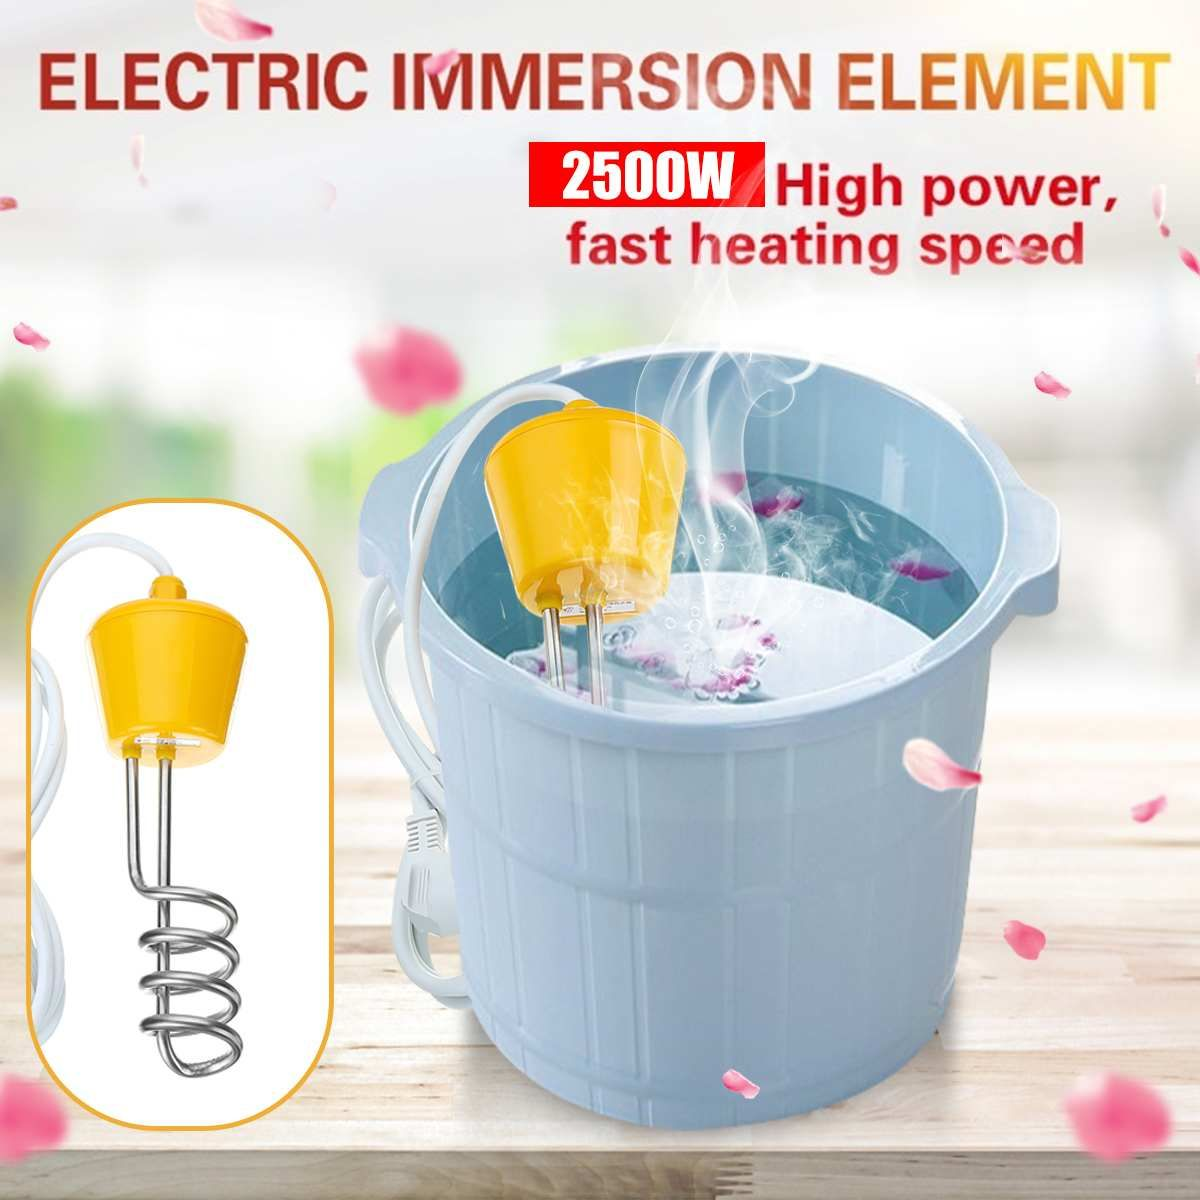 2500w Immersion Water Heater Mini Electric Heater Heating Element